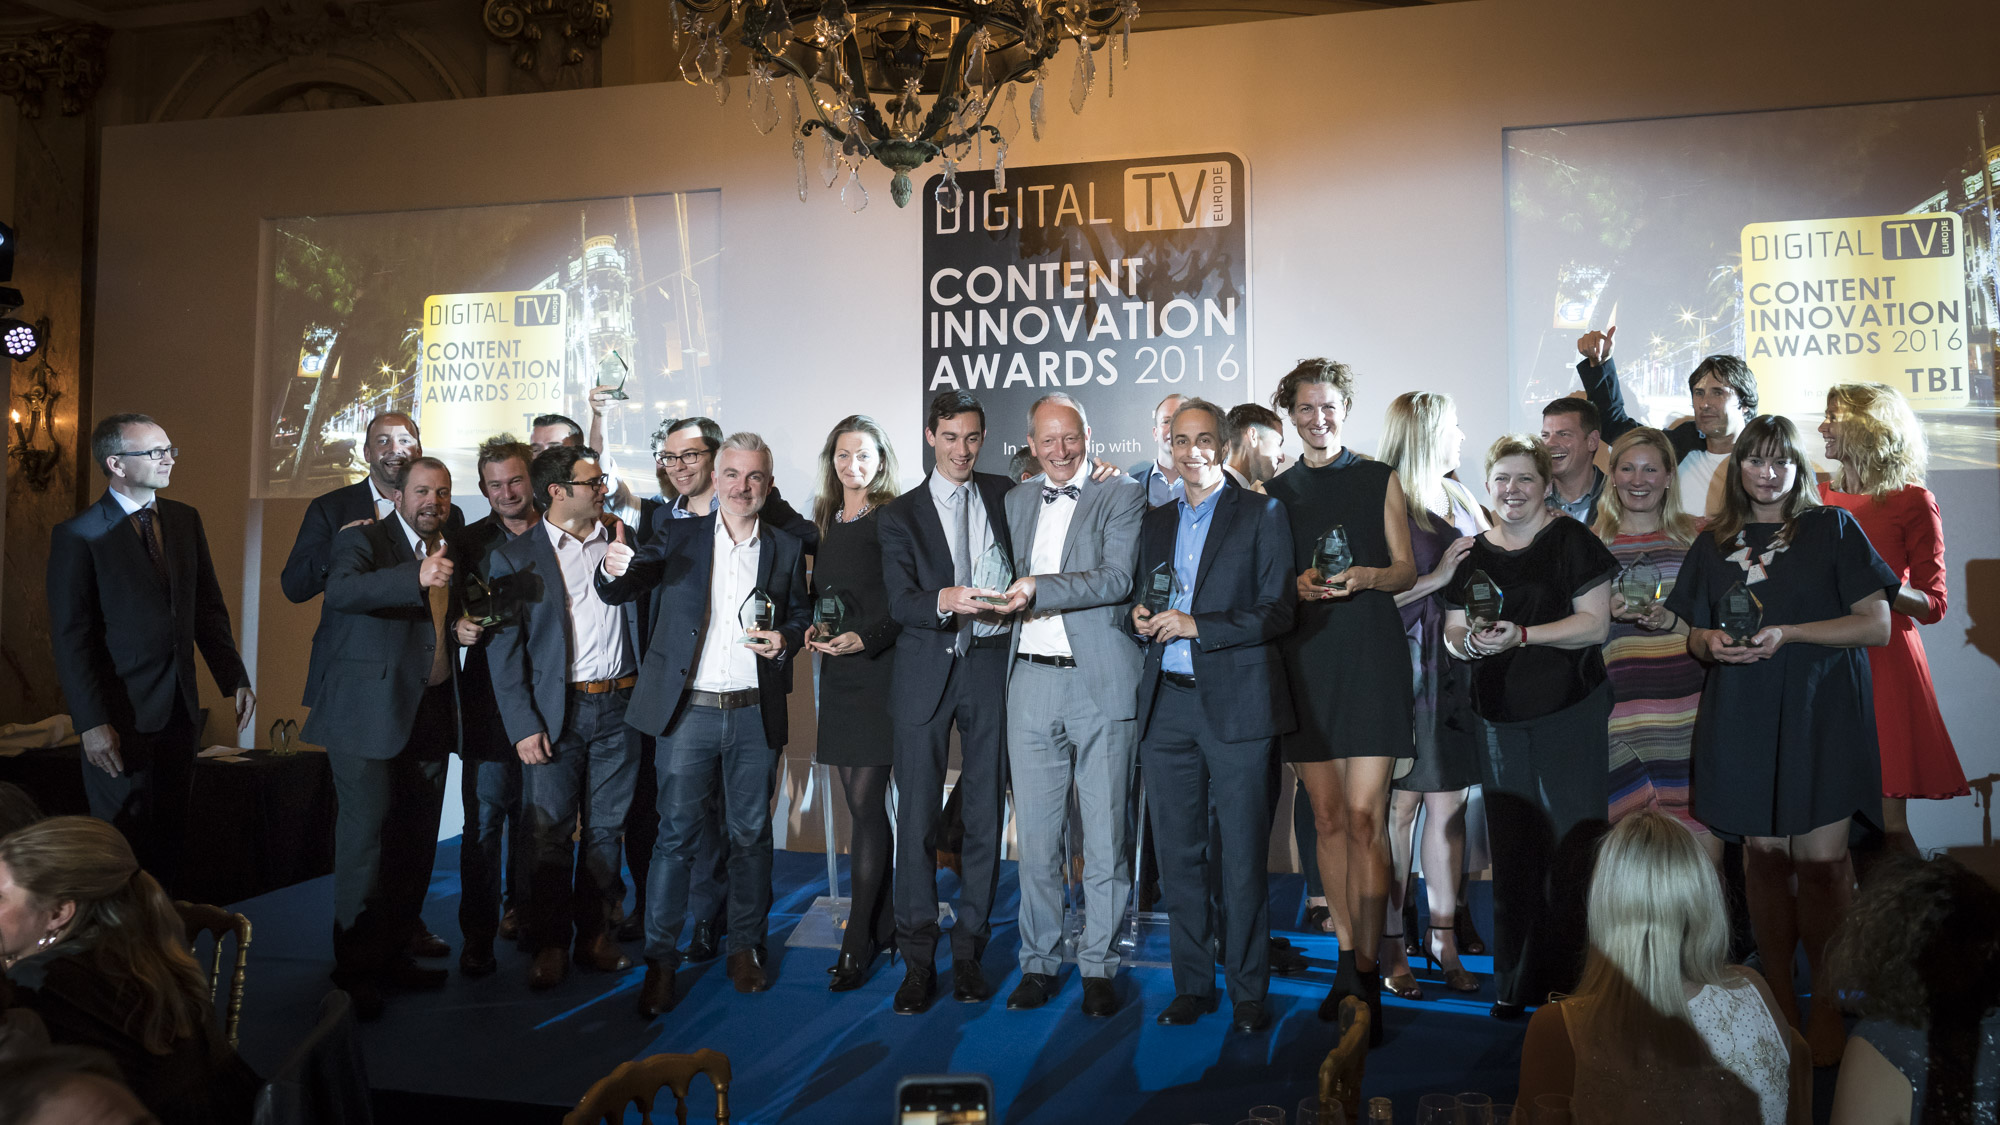 Content Innovation Awards winners 2016